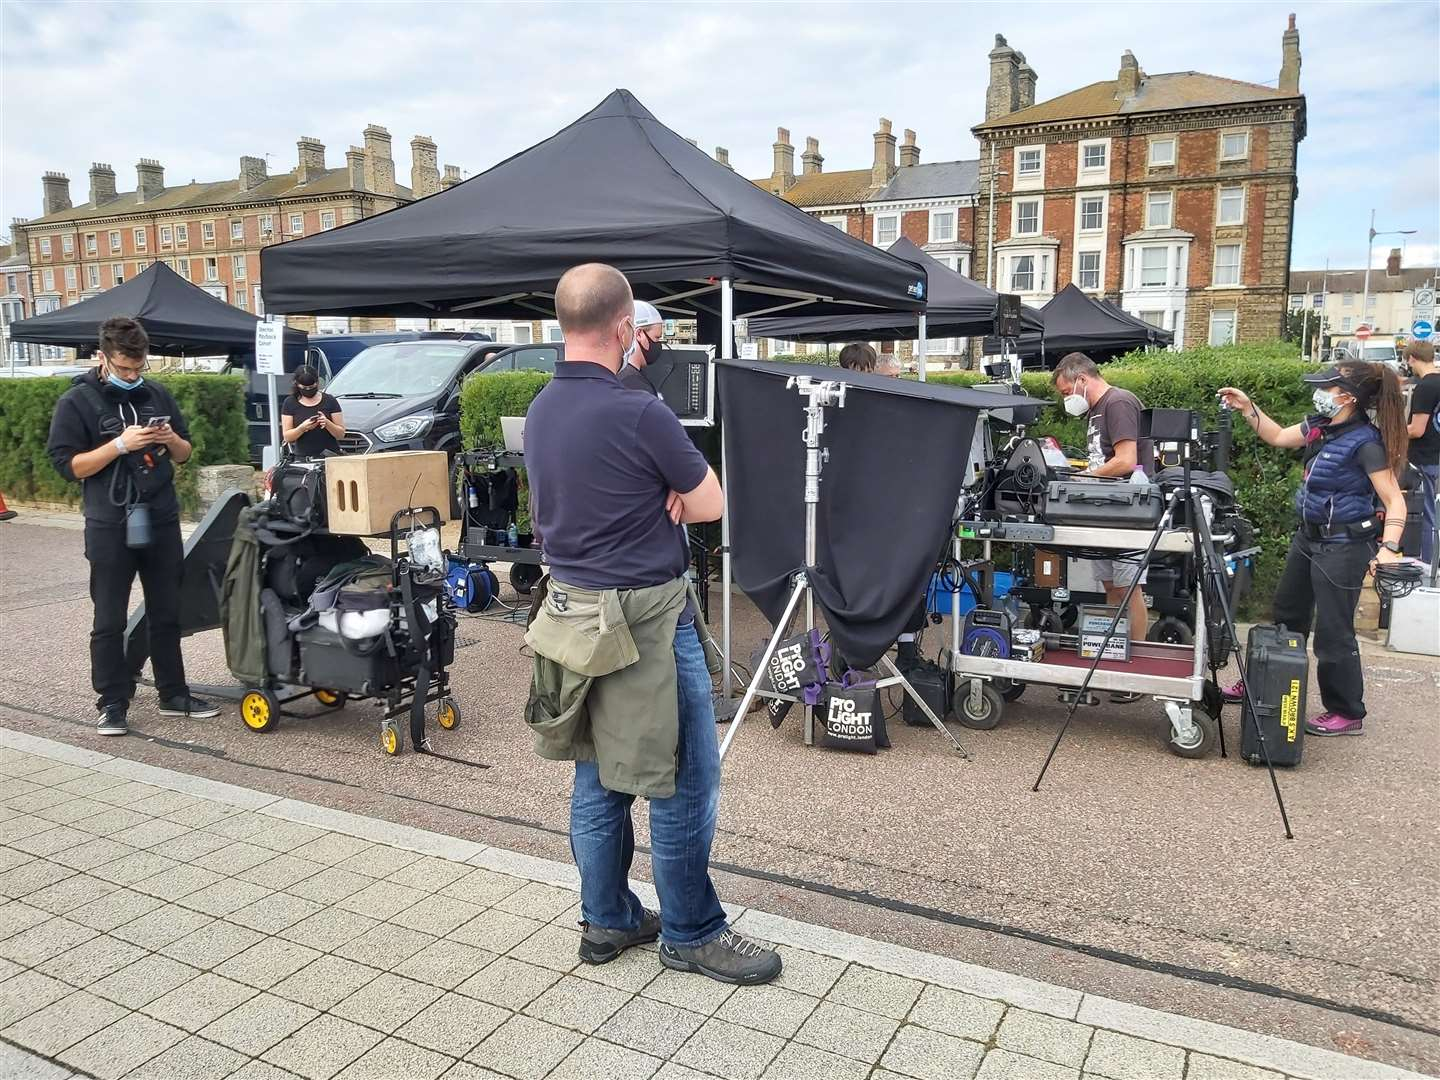 The film crew prepare on the promenade at Lowestoft seafront ahead of filming the closing scenes for the new Burberry advert. Pictures: Screen Suffolk